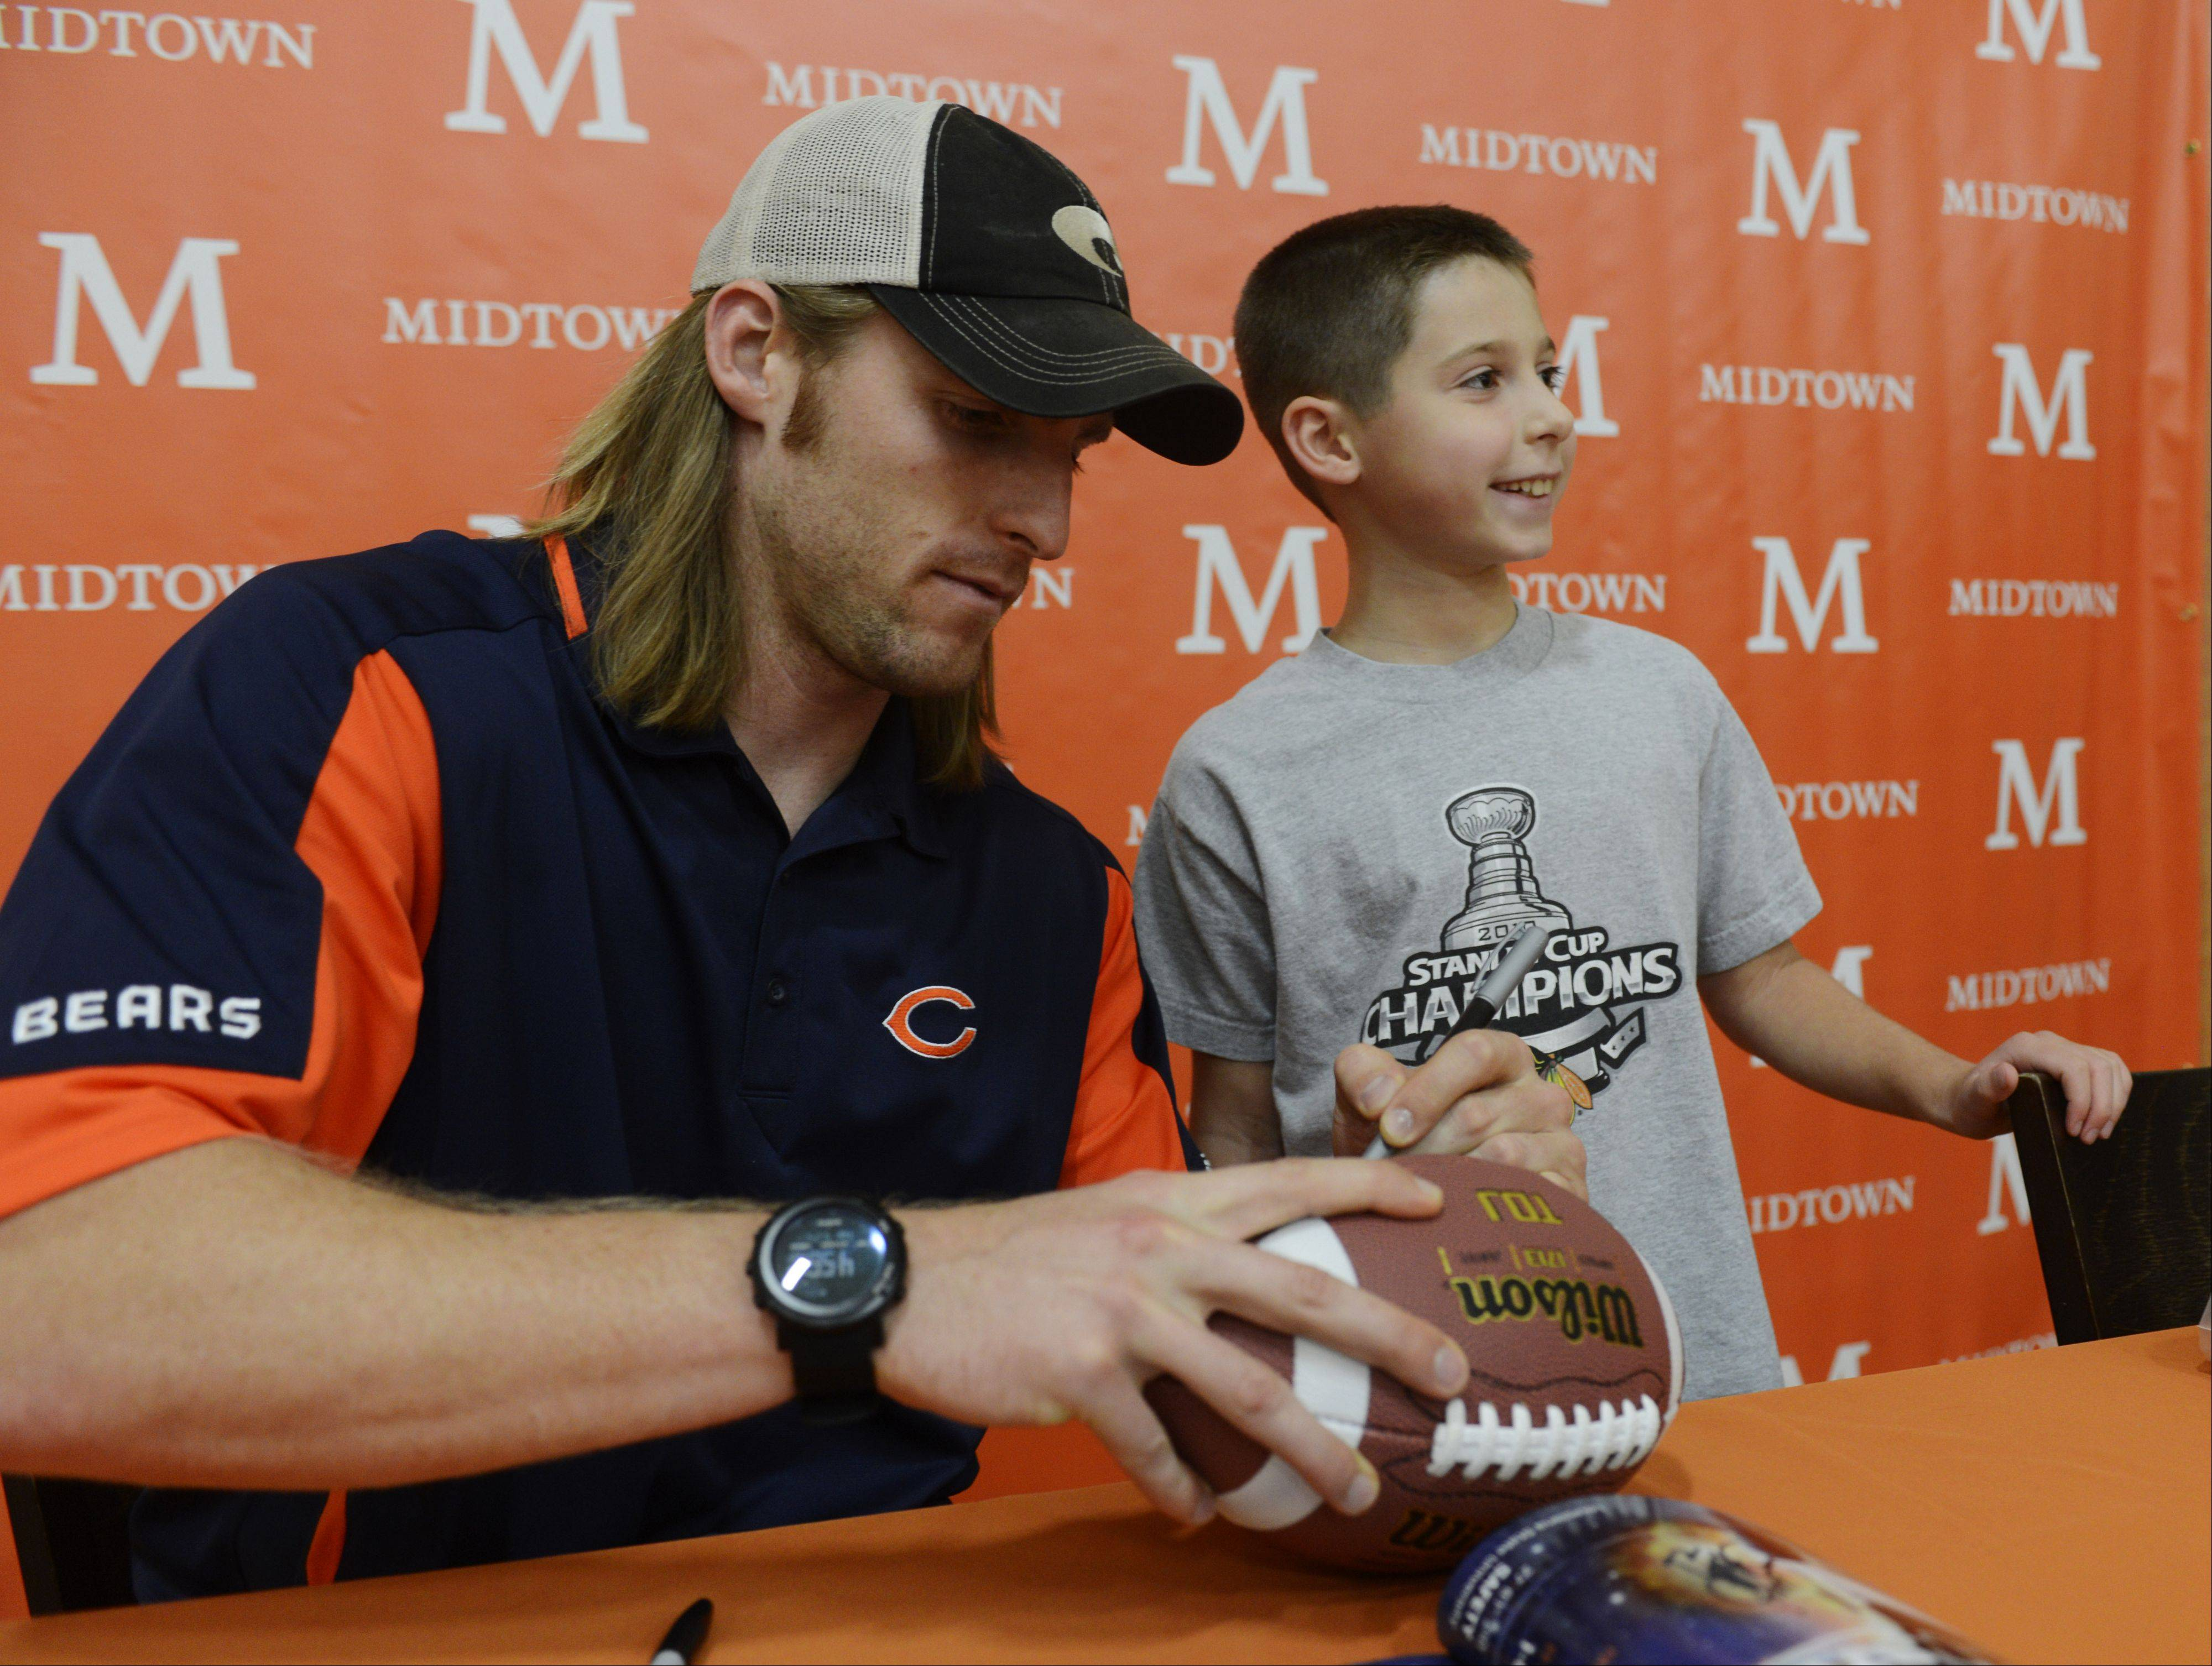 JOE LEWNARD/jlewnard@dailyherald.com Chicago Bears safety Craig Steltz signs a football for Connor Nichols, 9, of Palatine during a fitness event Tuesday for children at the Midtown Athletic Club in Palatine Tuesday. The event served as a kickoff to Saturday�s Midtown 5K Run & Walk to benefit Bears Care.